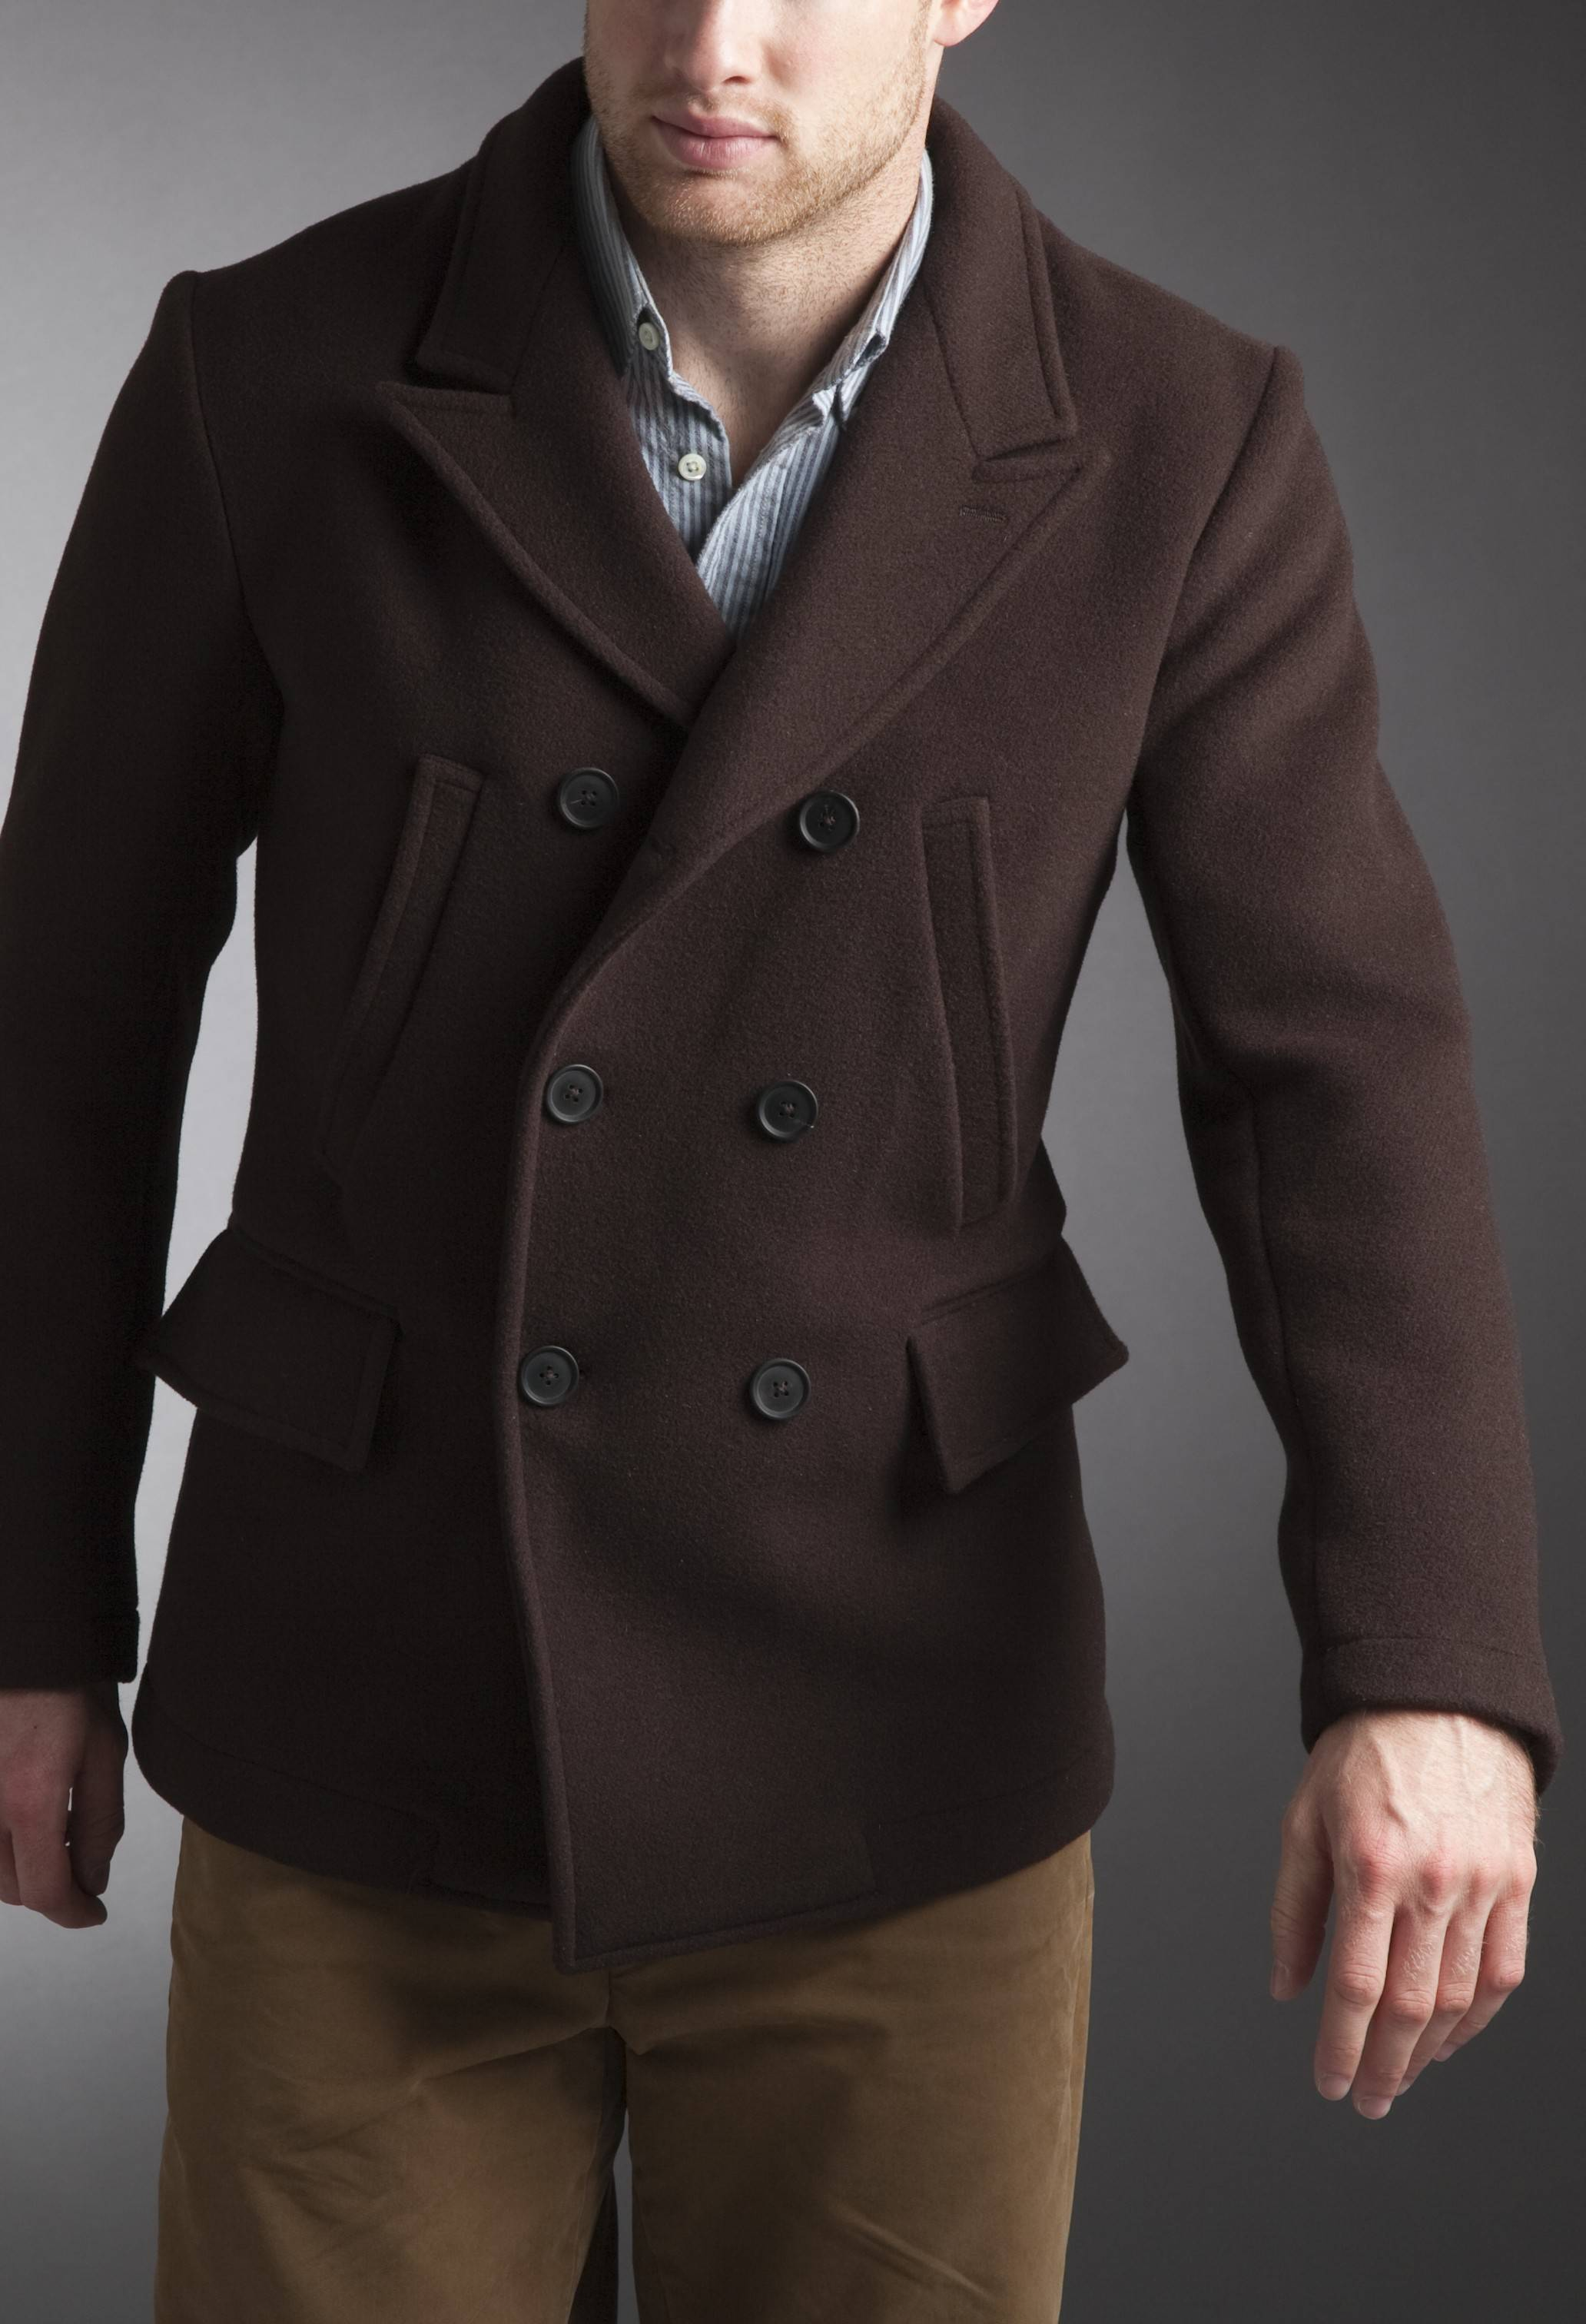 Images of Brown Pea Coat Mens - Reikian